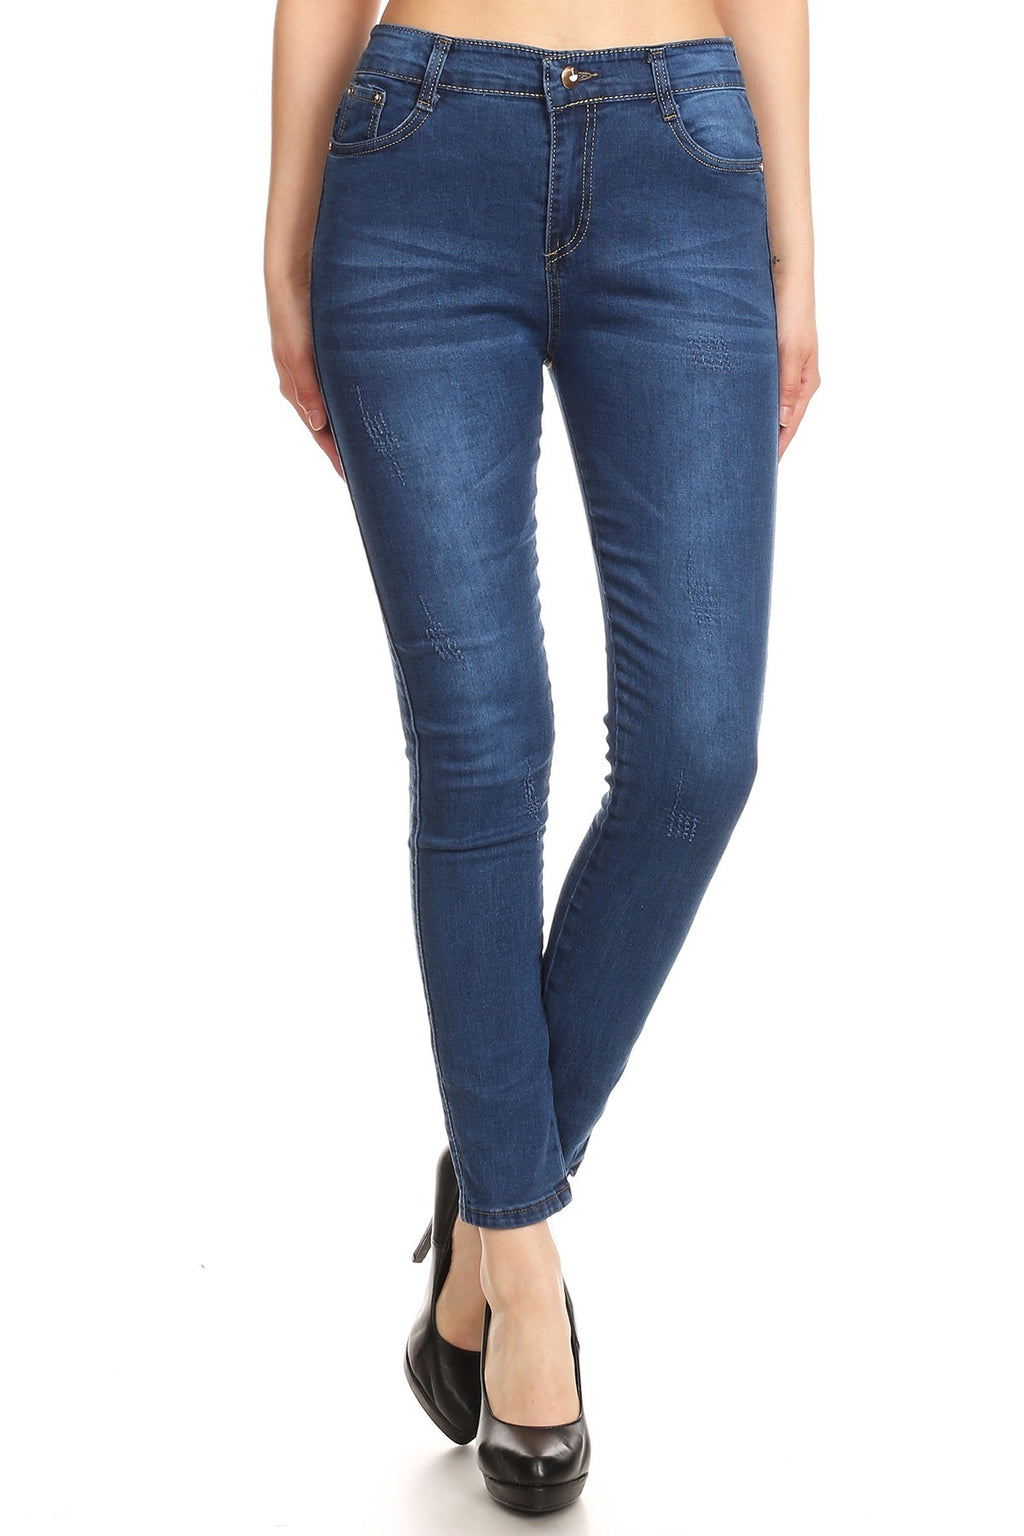 Stretch Dark Denim-2 LEFT!